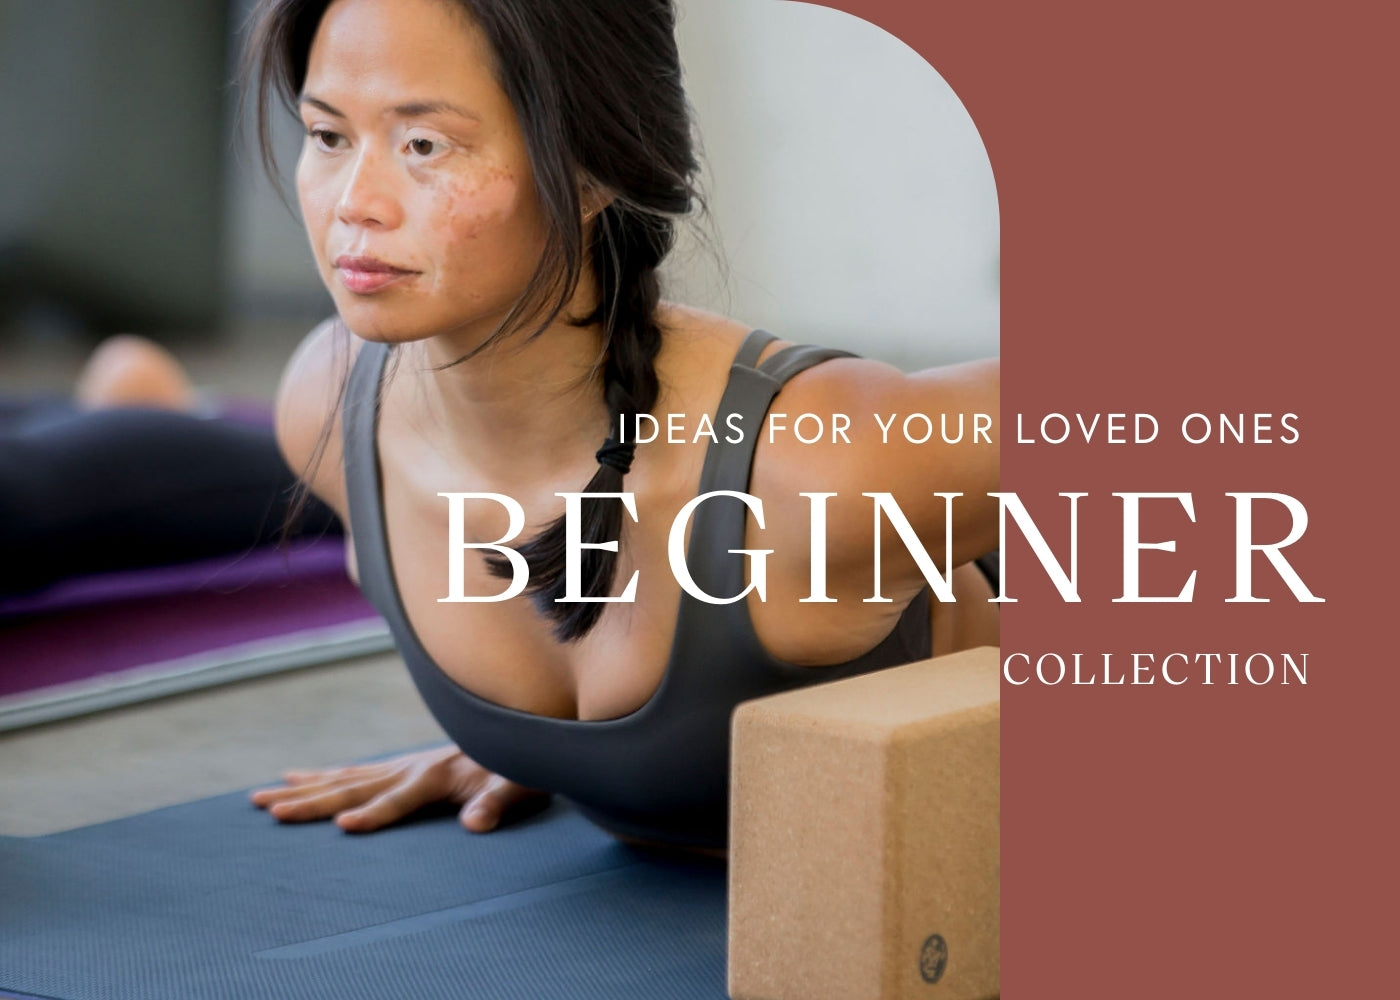 Gifts ideas for Yoga Beginners